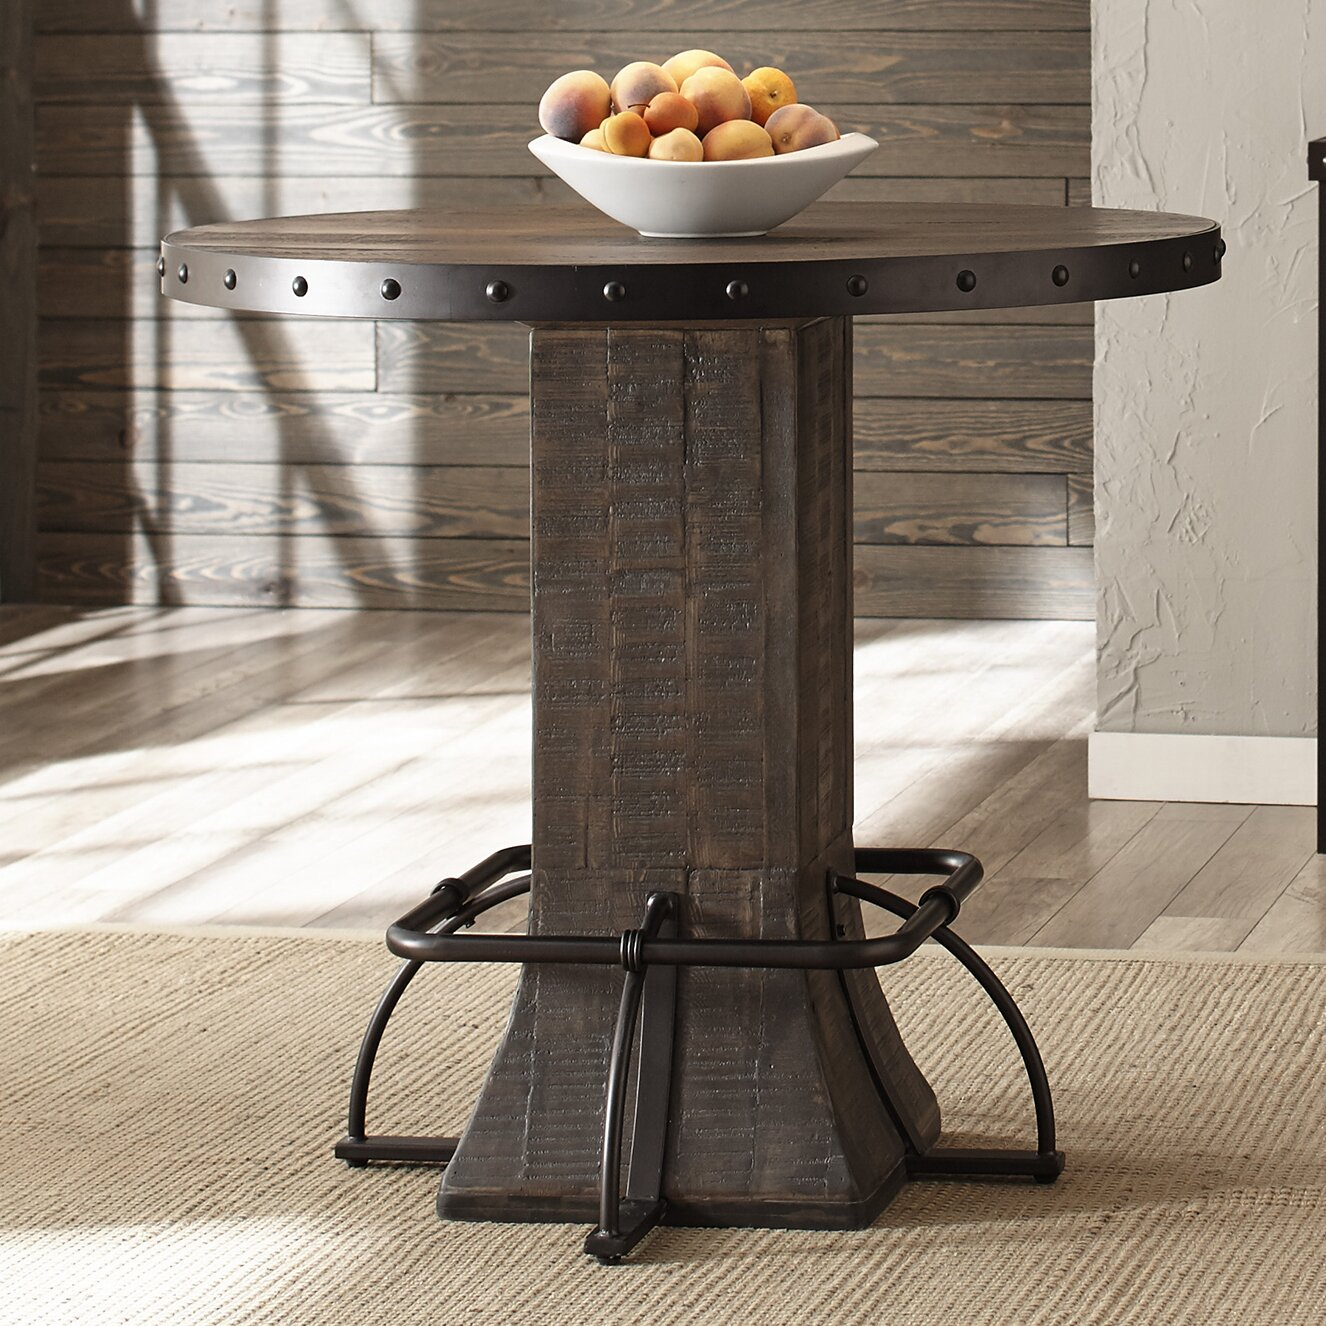 laurel foundry modern farmhouse christena round counter height dining table wayfair. Black Bedroom Furniture Sets. Home Design Ideas